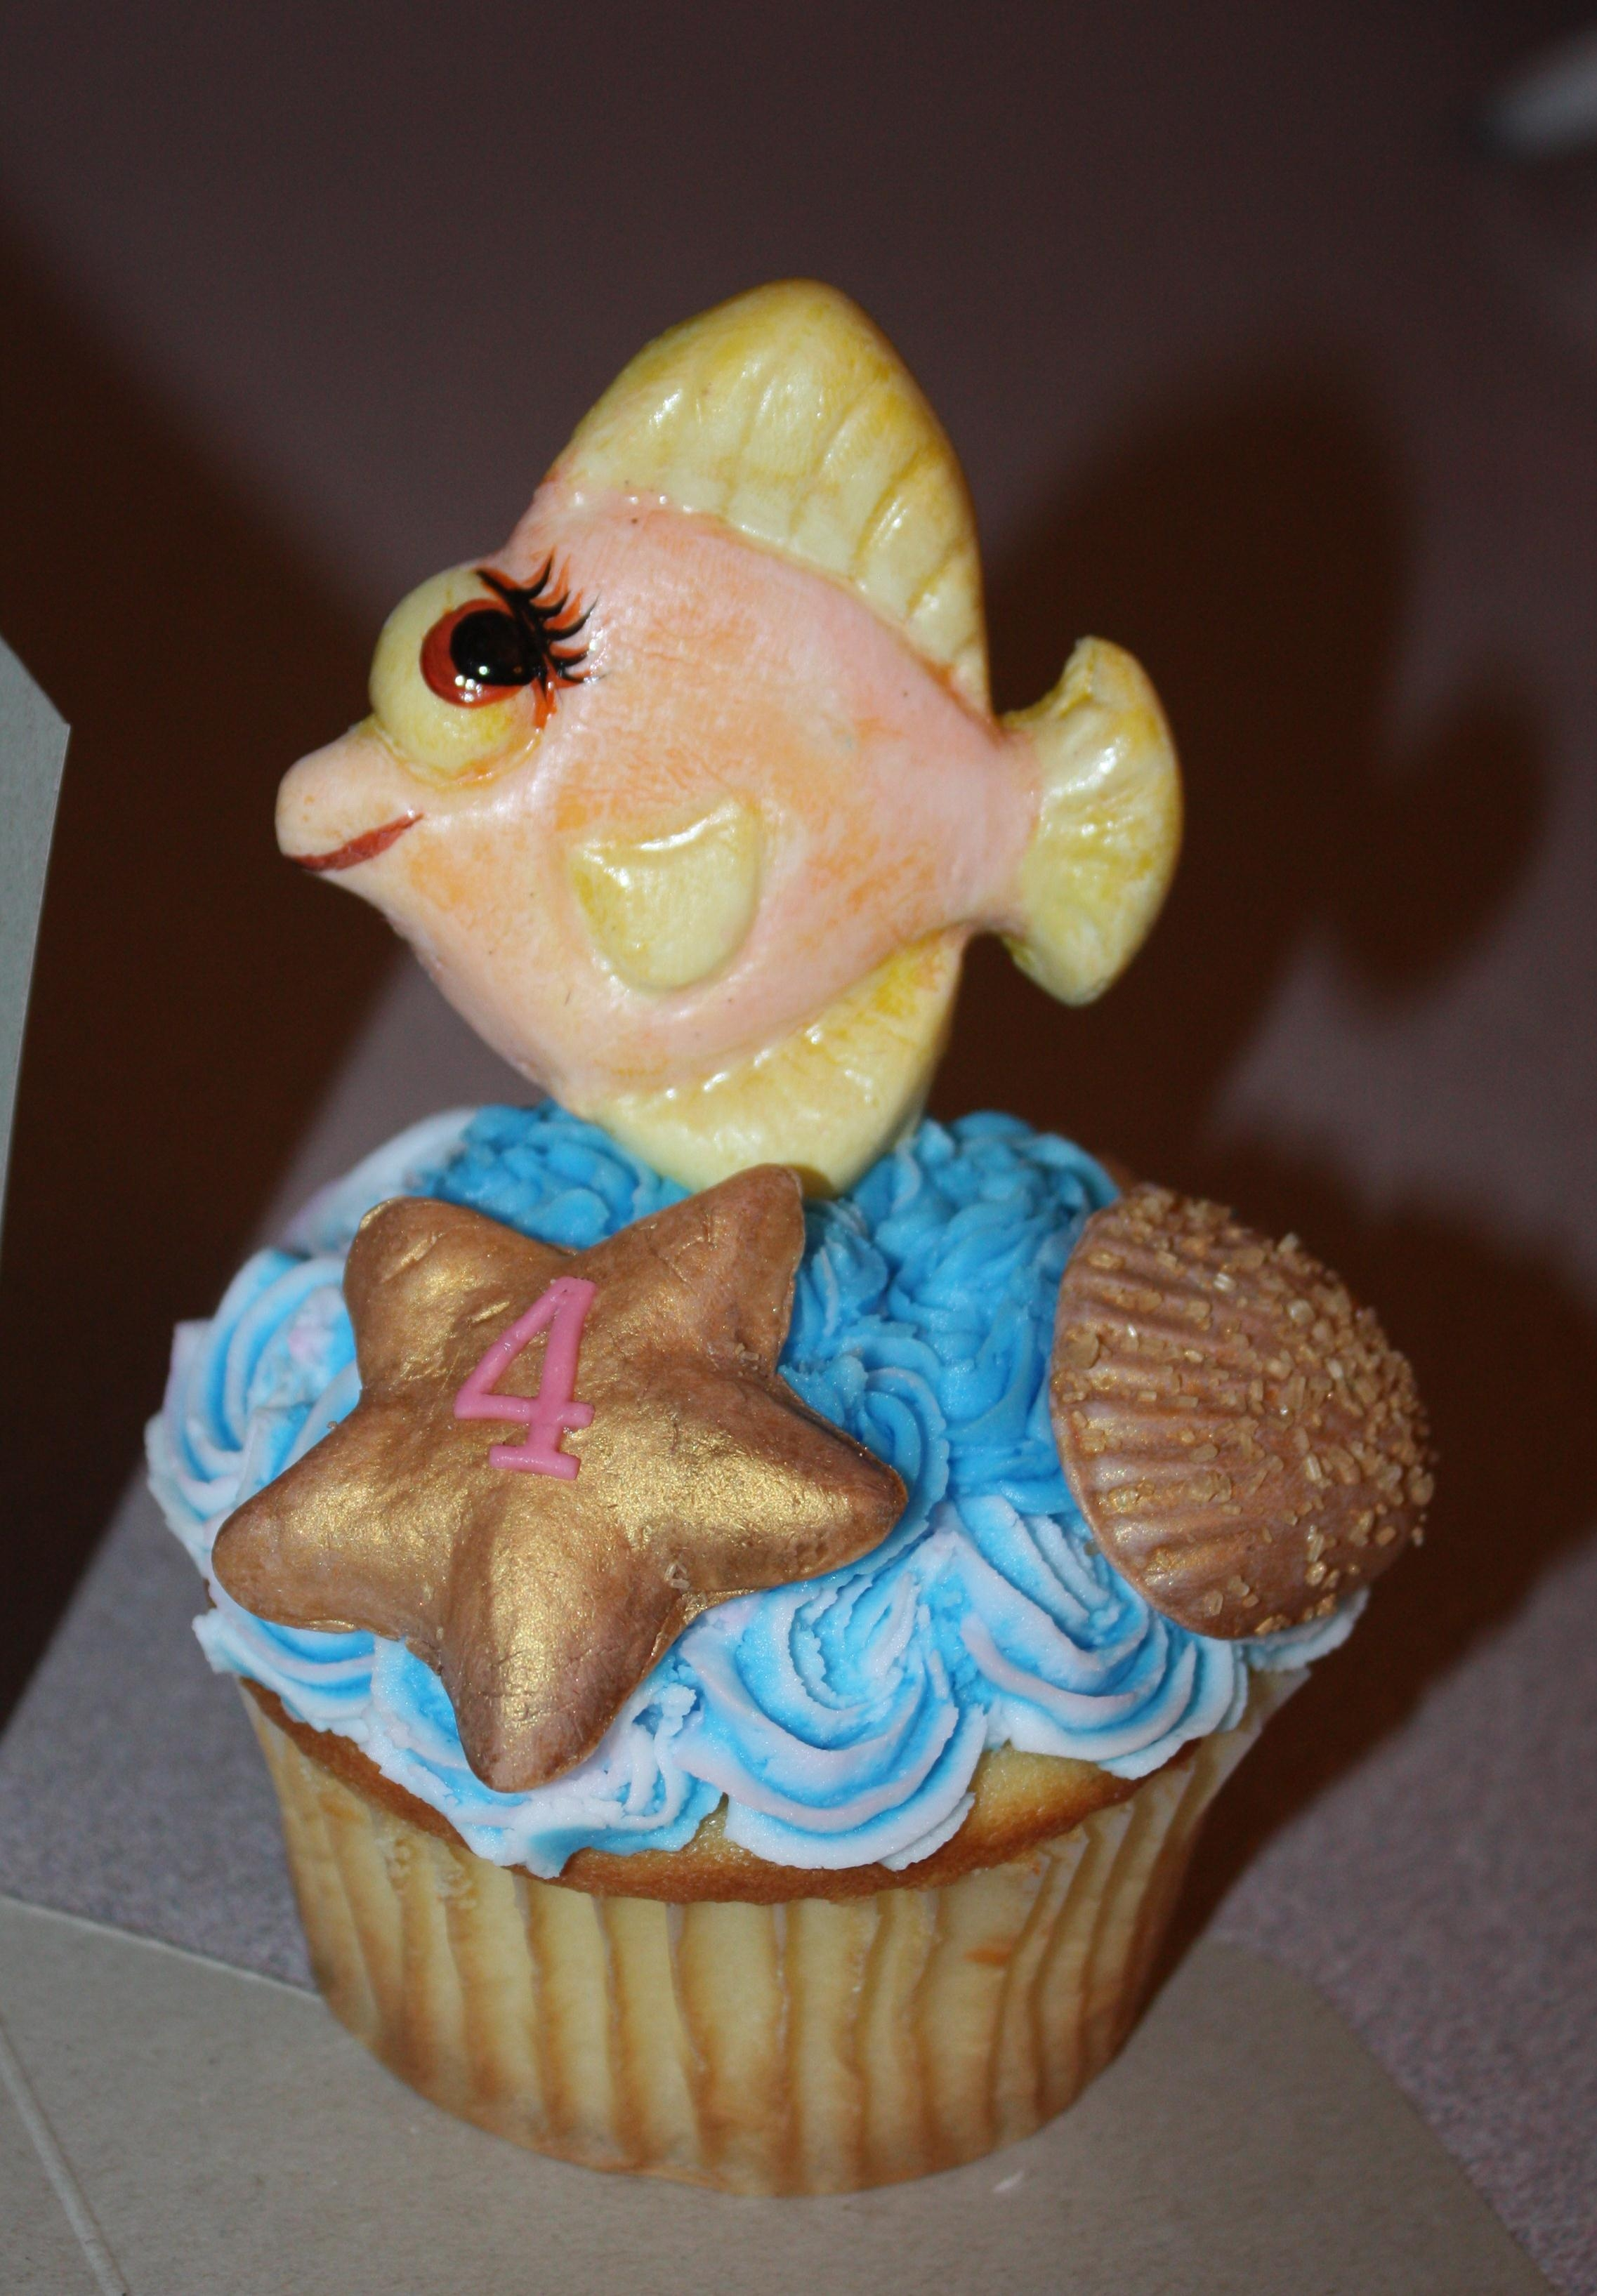 Sea Creature Cupcakes   pressed white gumpaste/fondant into mold, when dry hand painted with foodcolor